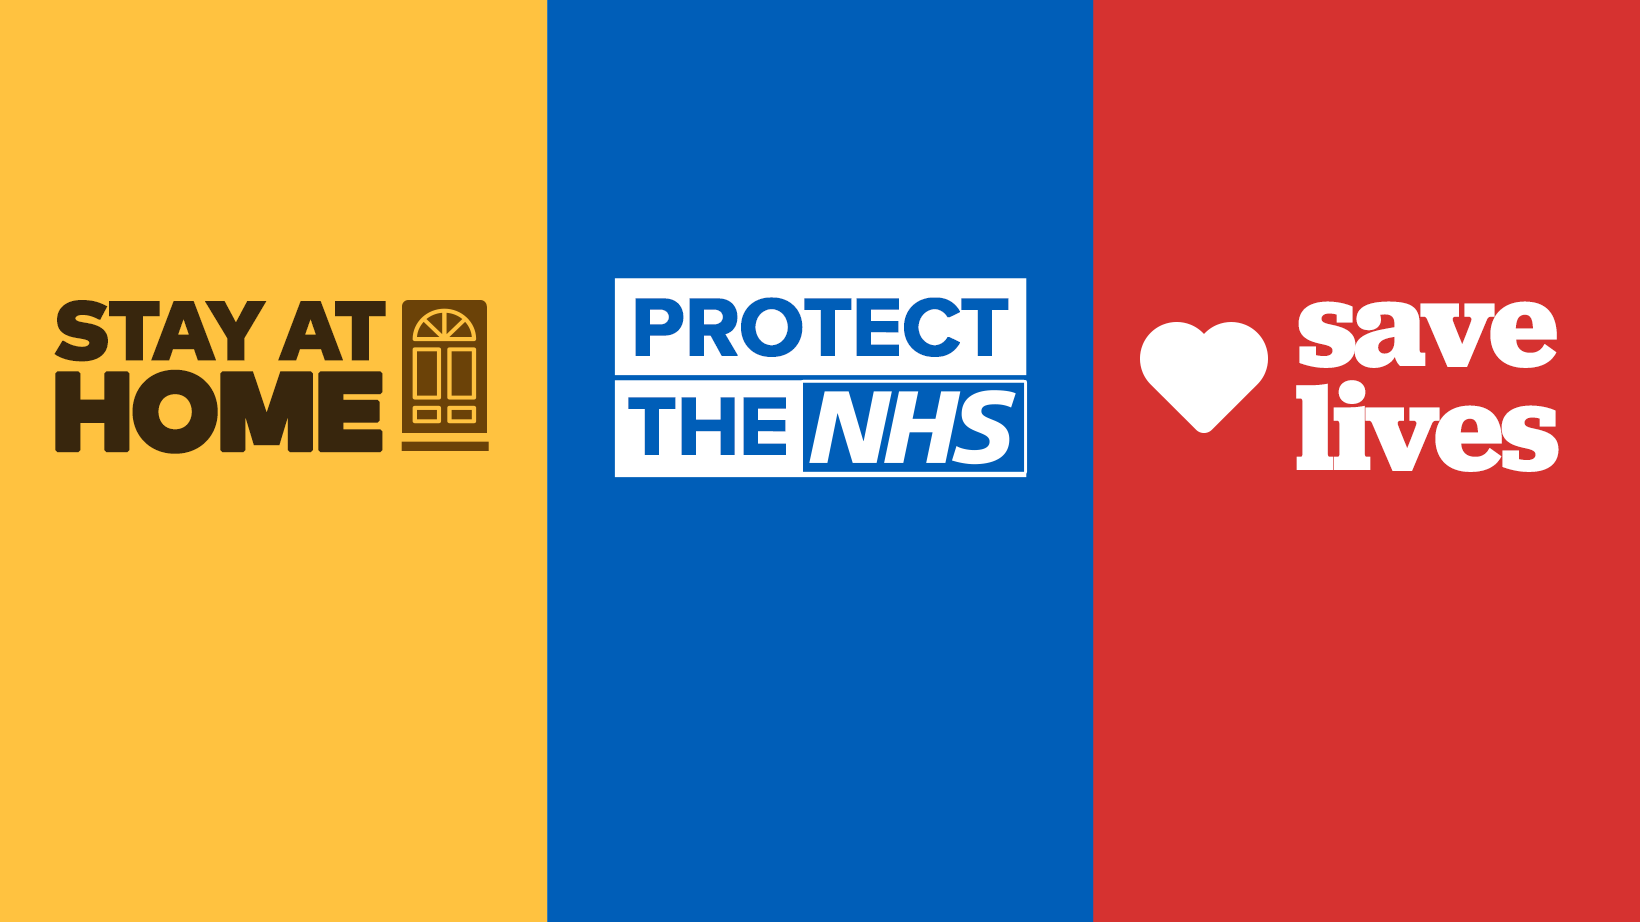 Save the NHS